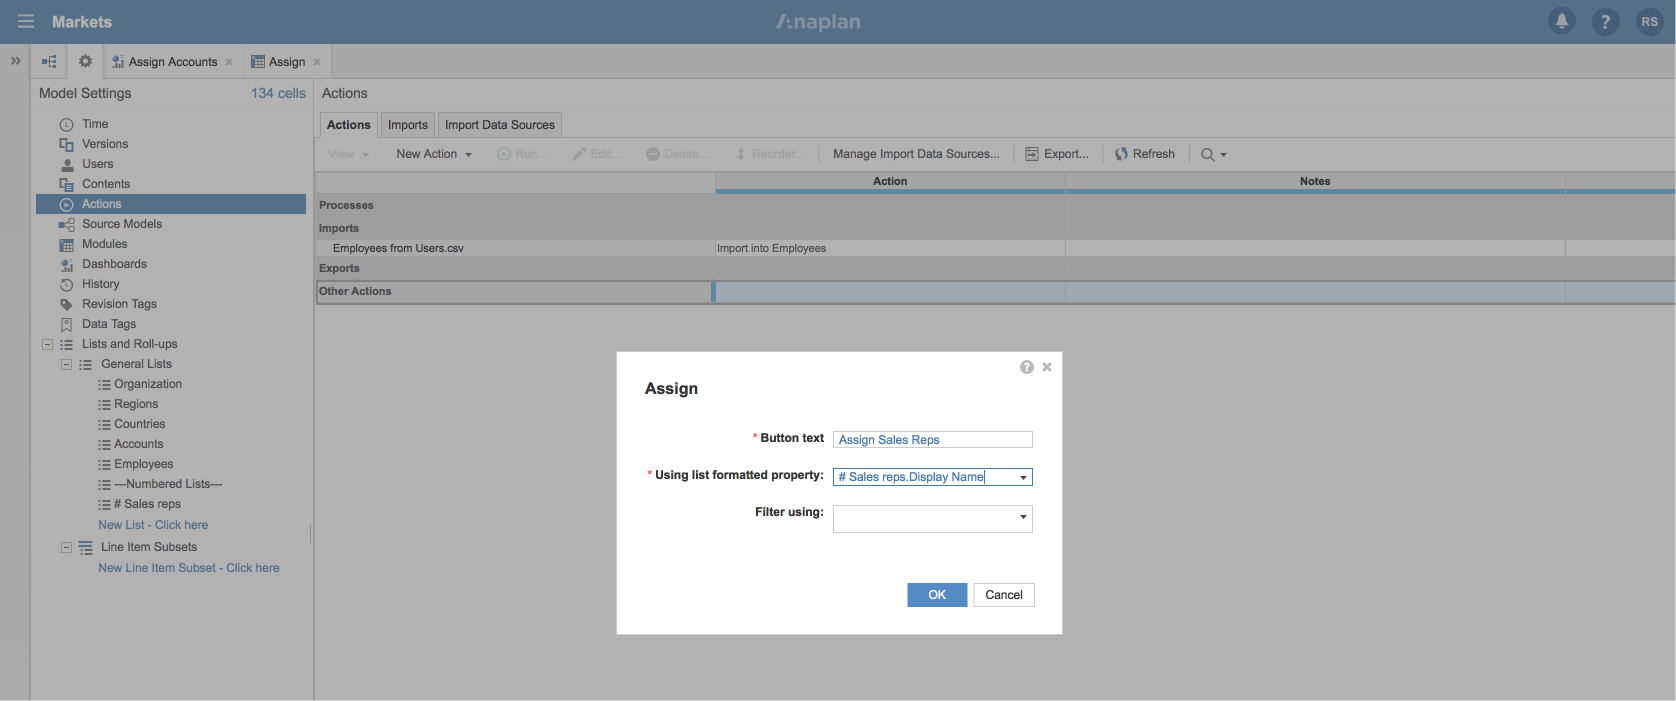 The Assign dialog. There are fields for Button text, Using list formatted property, and Filter using.